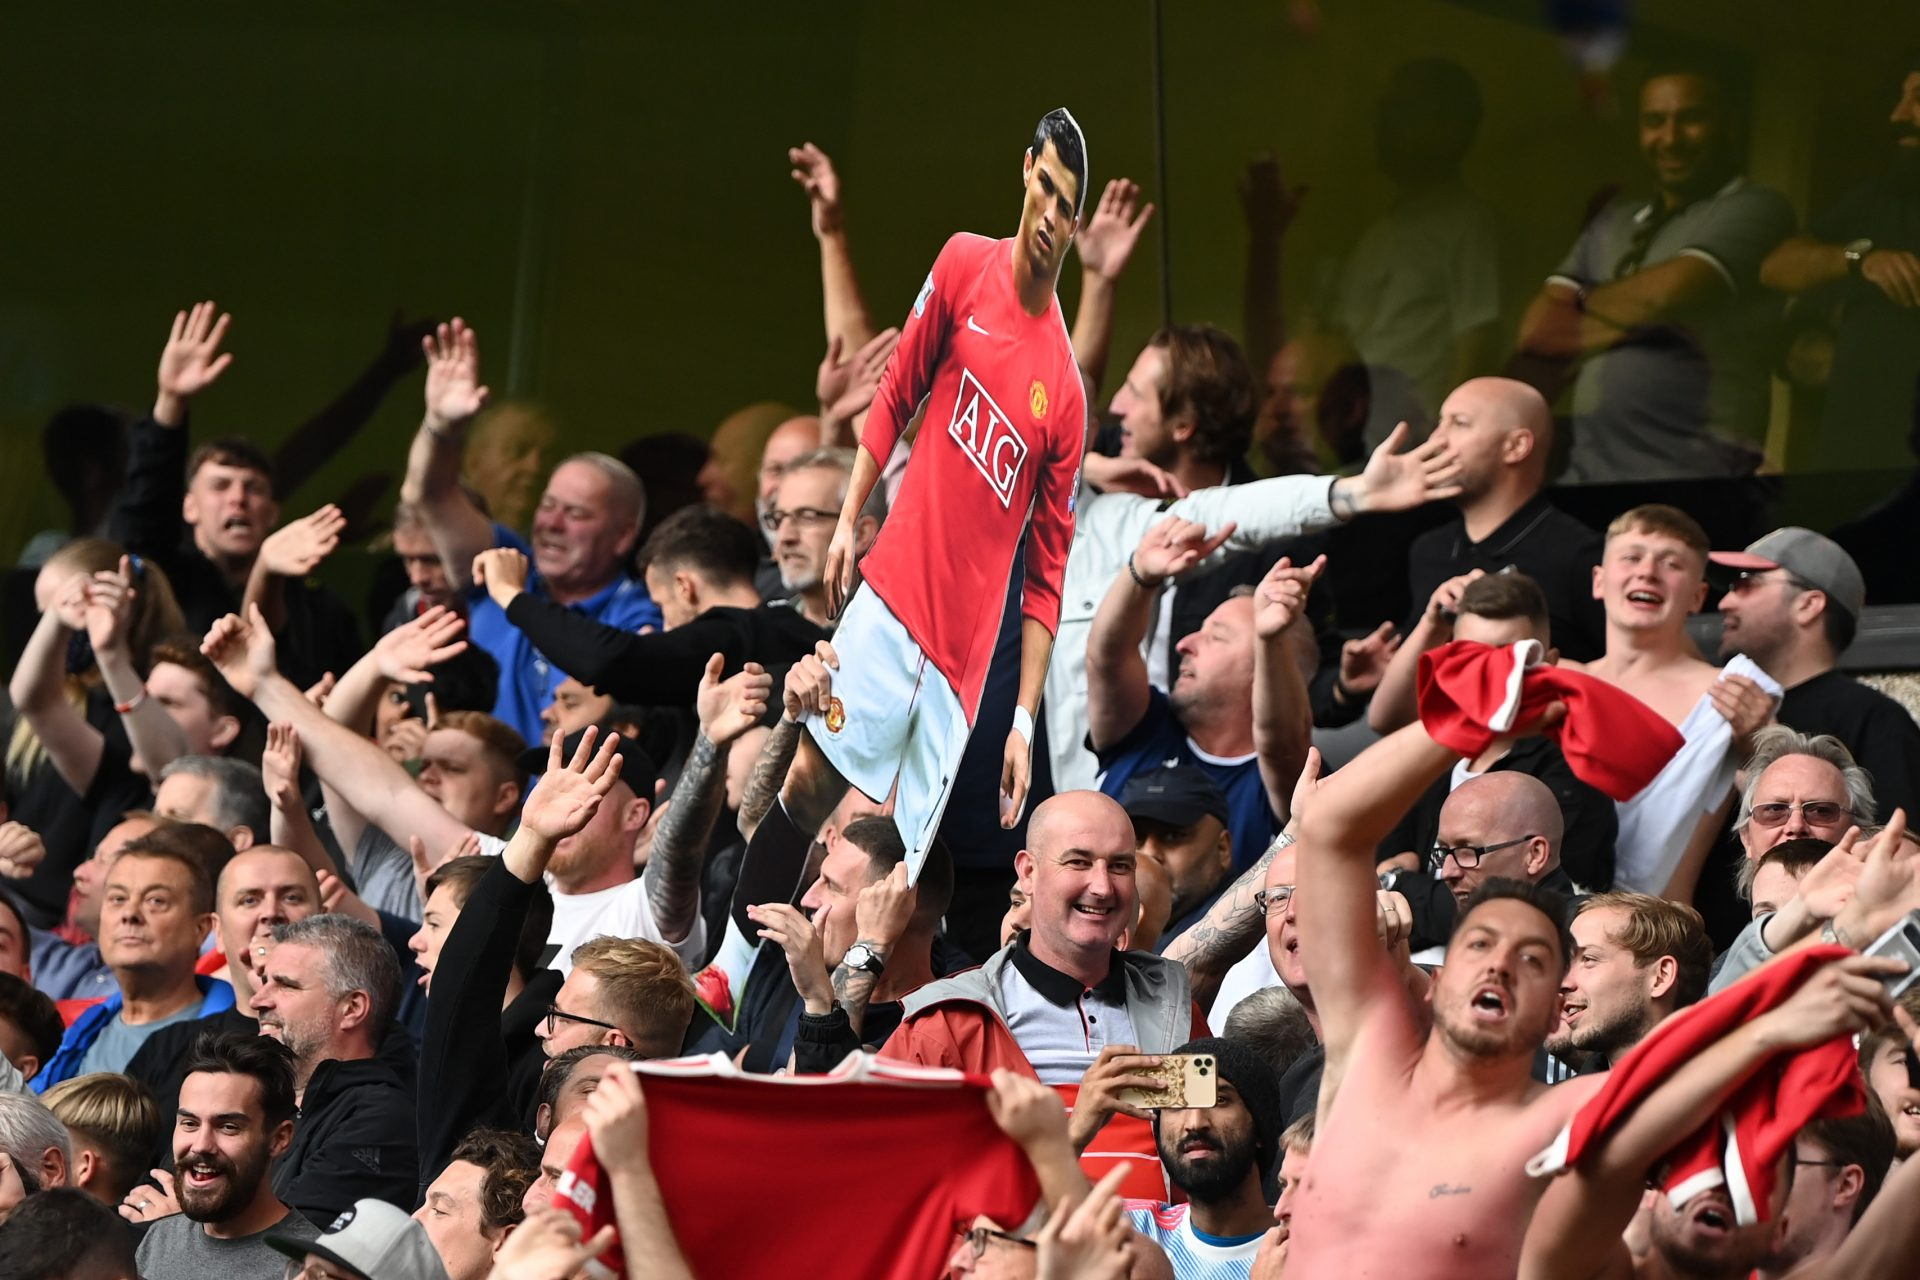 Manchester United fans hold up a cardboard cutout of Cristiano Ronaldo during their win at Wolves on August 29. Credit: Shaun Botterill/Allsport/ Getty; Kevin C Cox/Getty Images